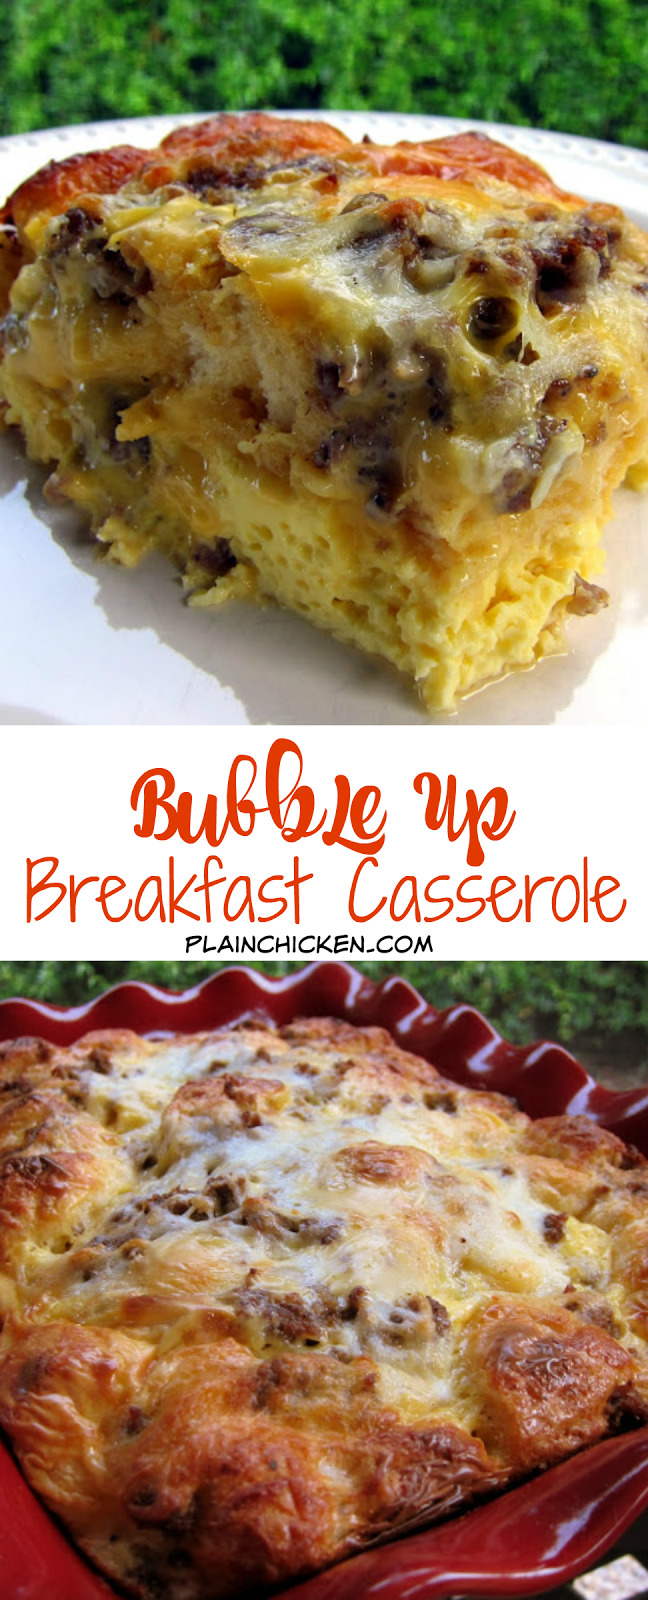 Bubble Up Breakfast Casserole - sausage, eggs, cheese and biscuits. SO good! Great for baby showers, overnight guest and the holidays. Only takes minutes to make. Quick and easy breakfast recipe!